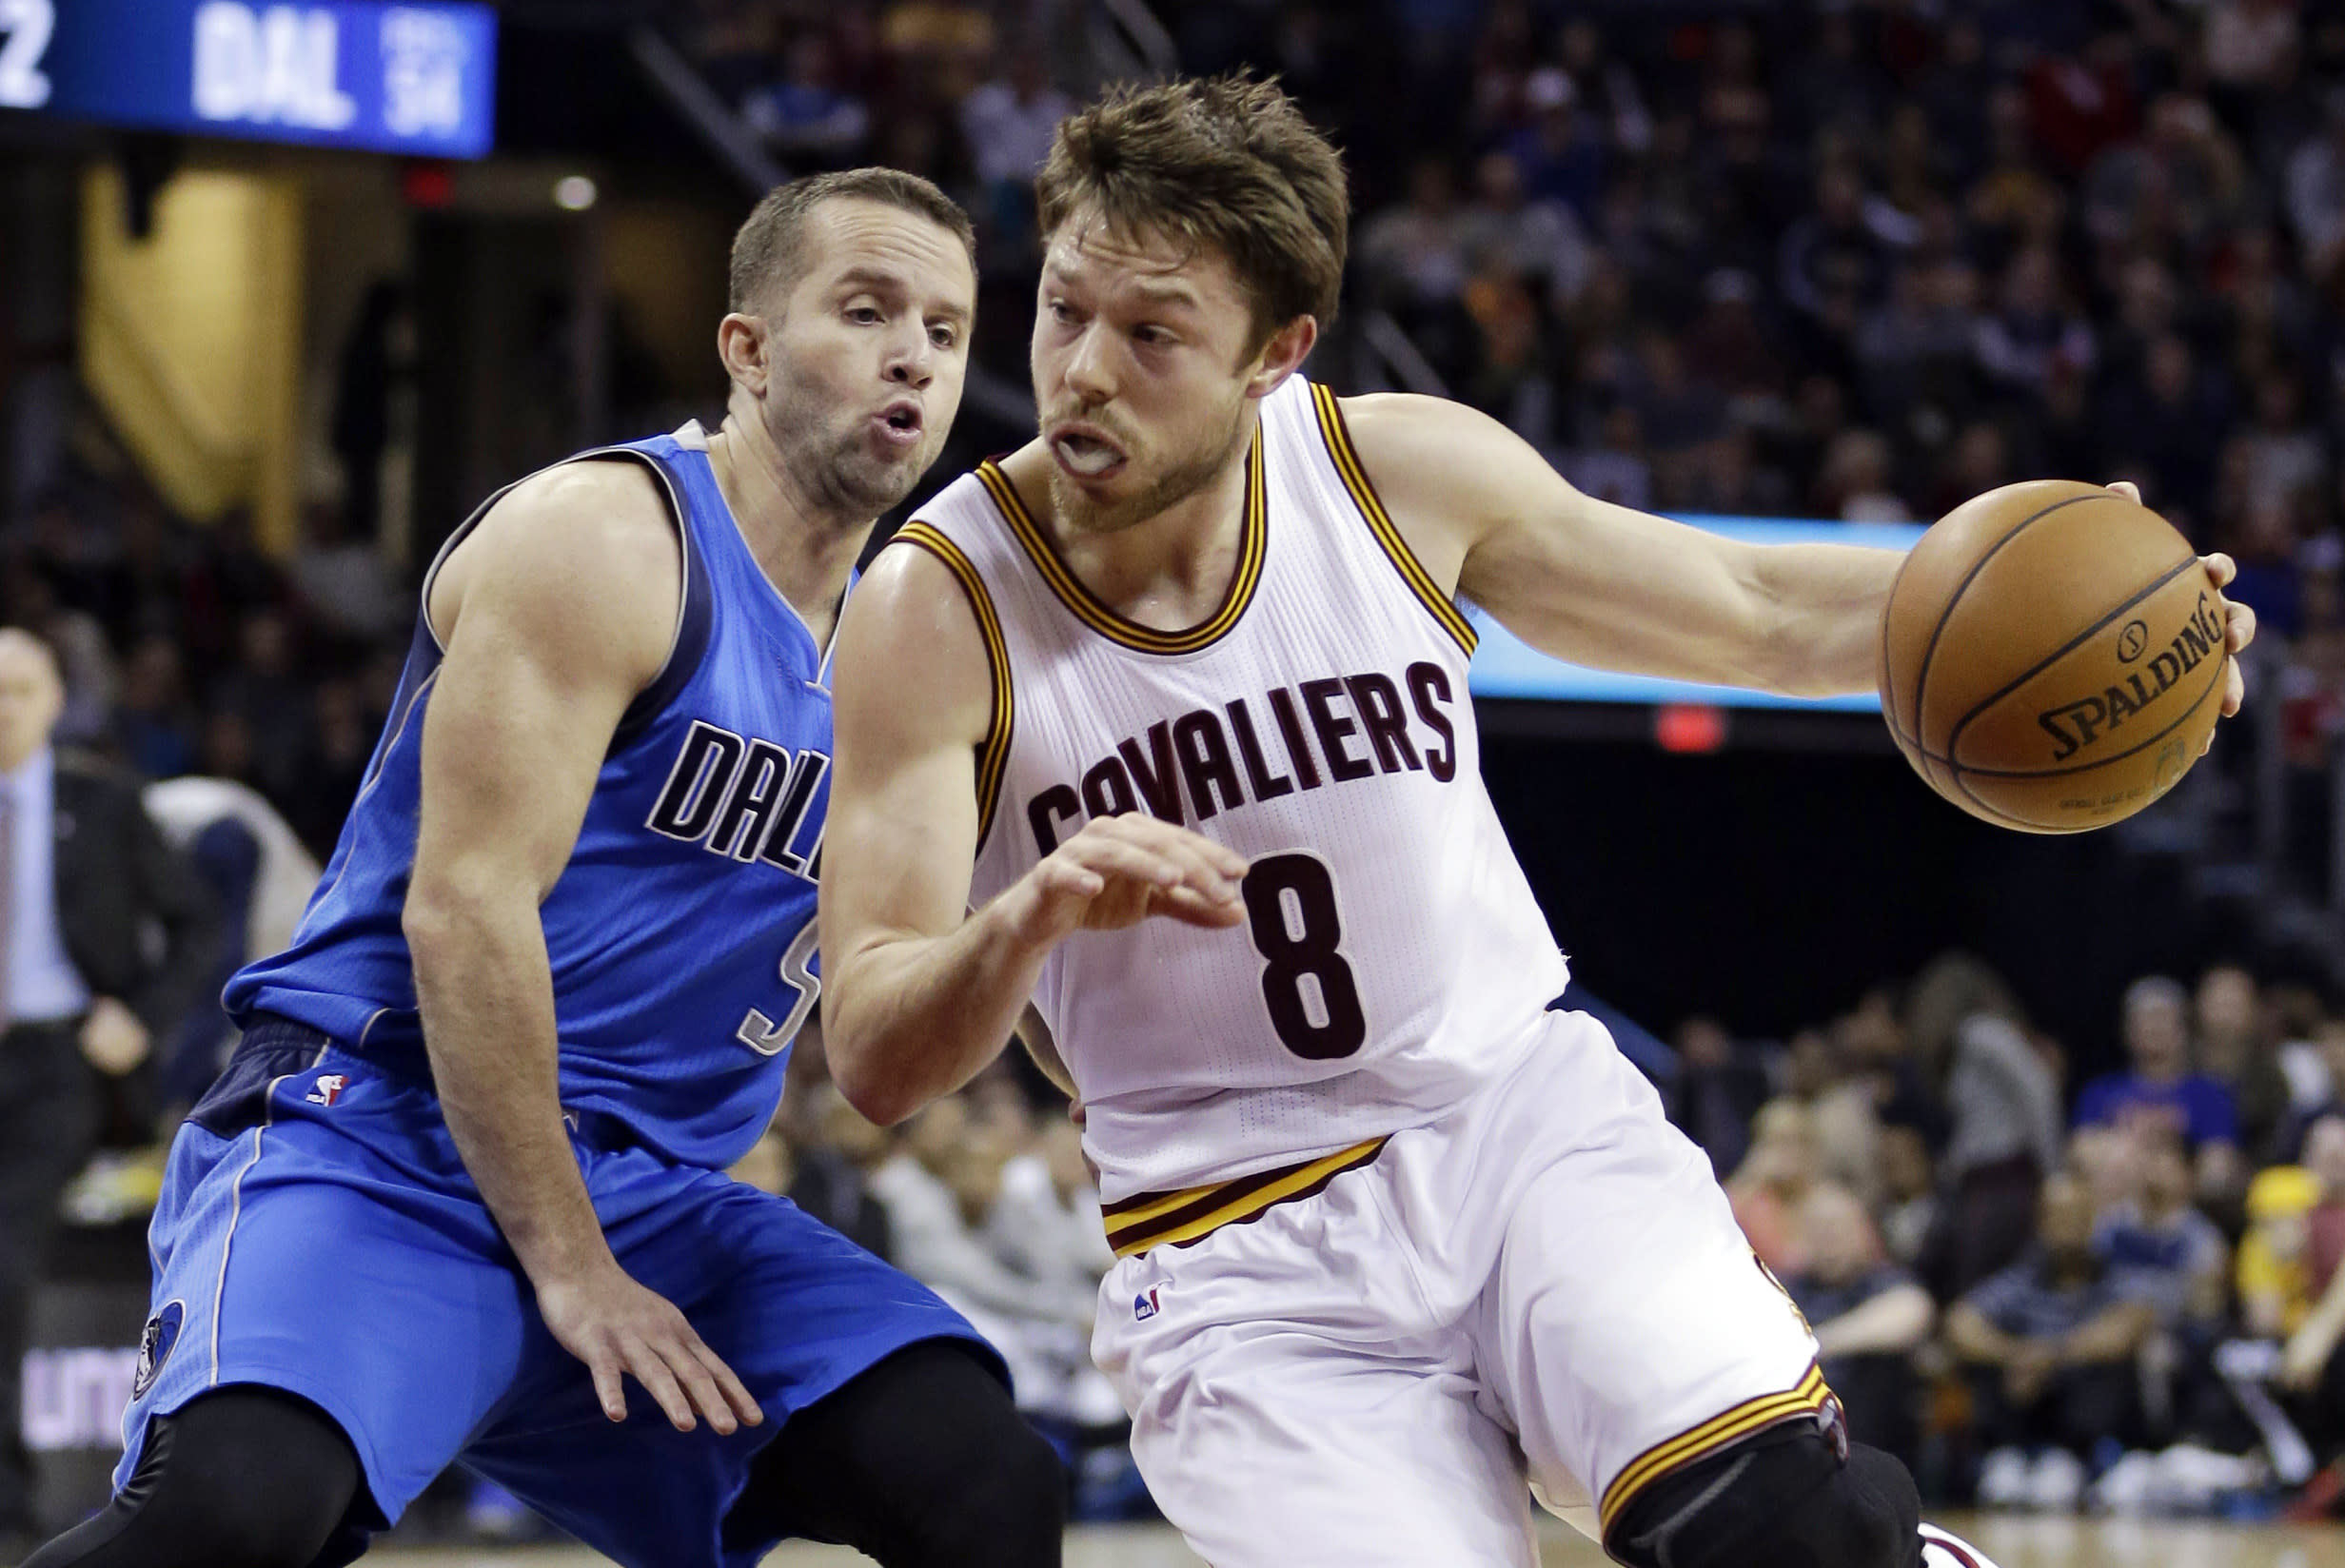 Man at work: Aussie guard Dellavedova sparks Cavs with grit